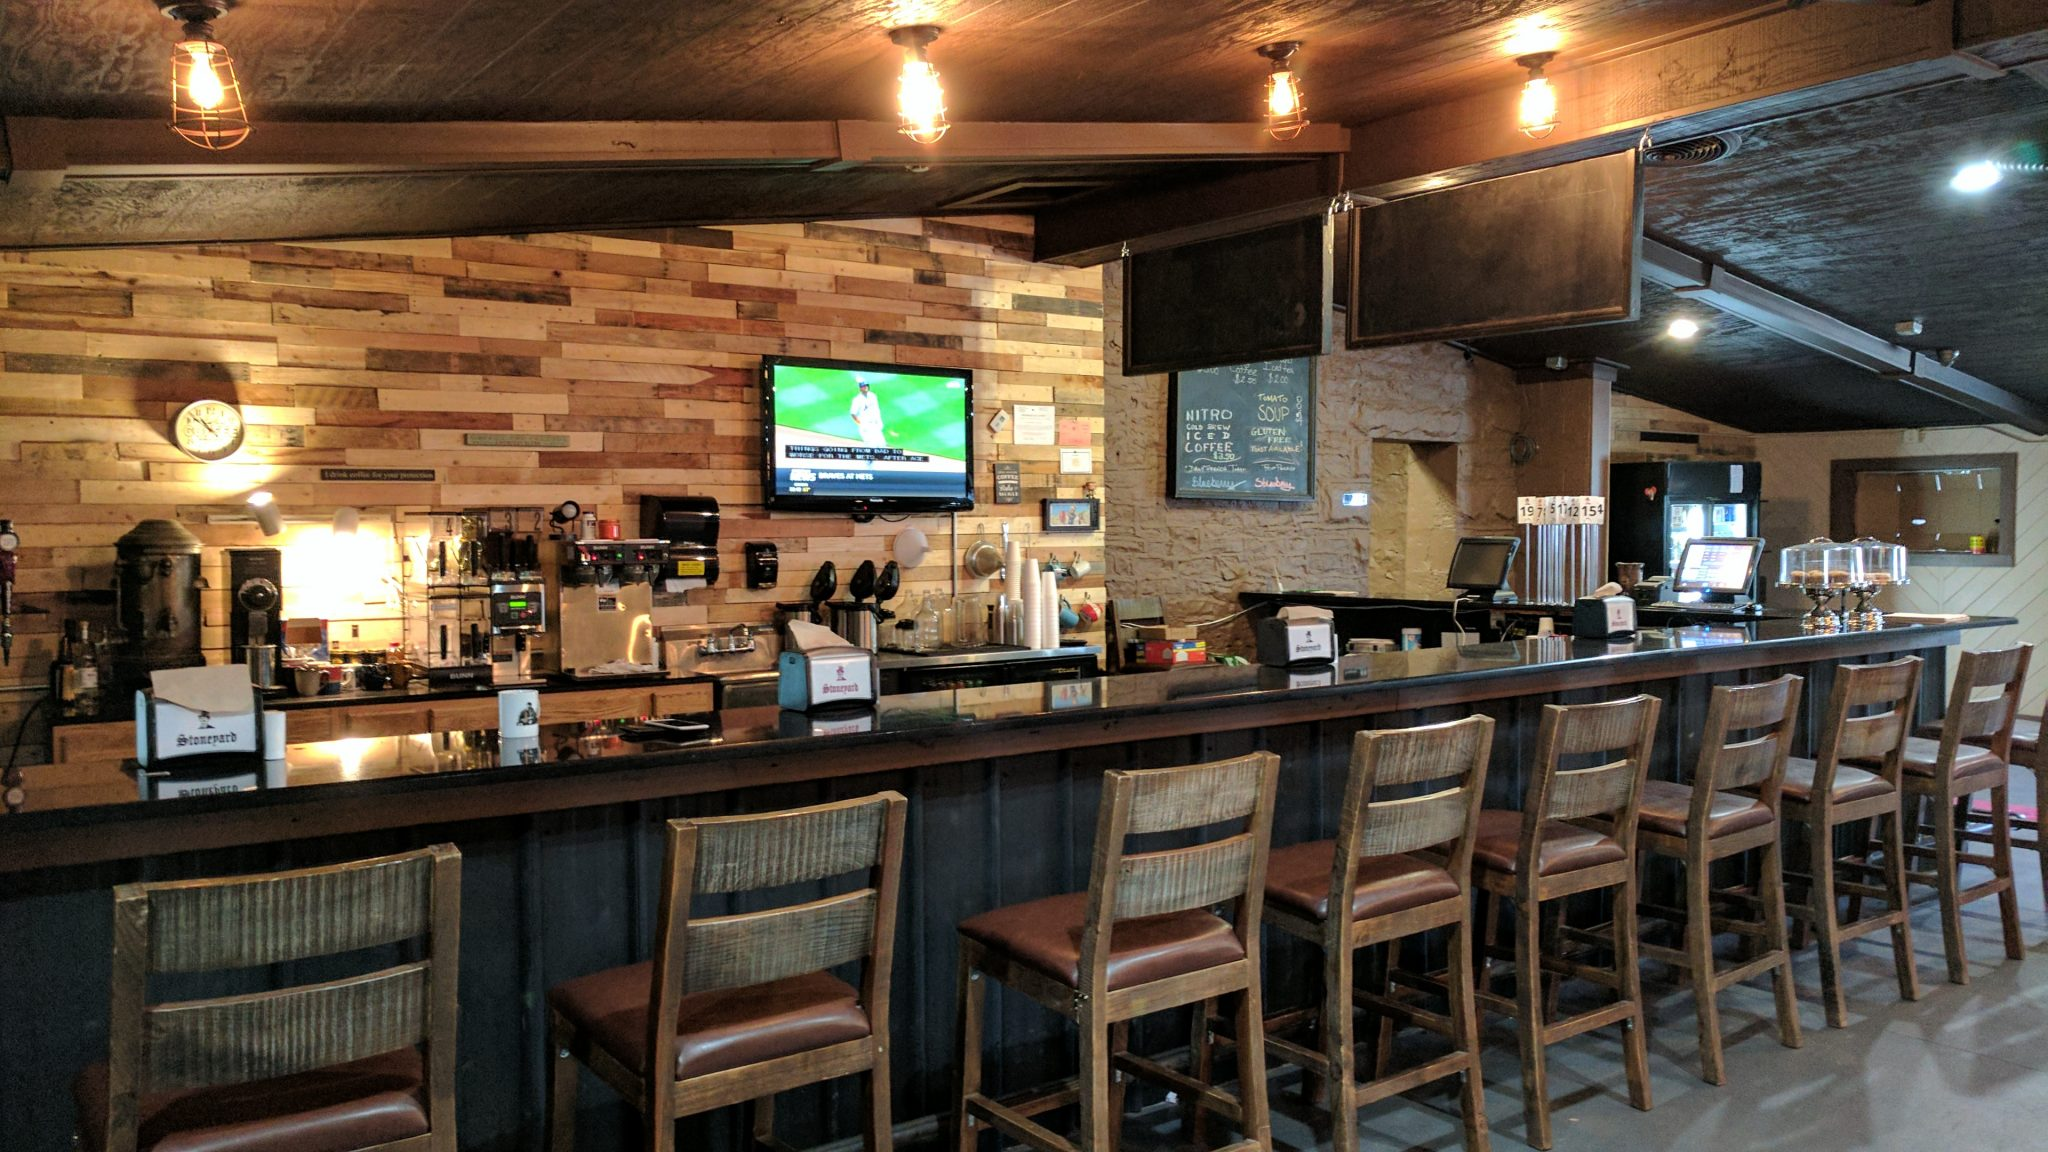 Sit At The Bar At Stoneyard Breakfast Company In Brockport, NY